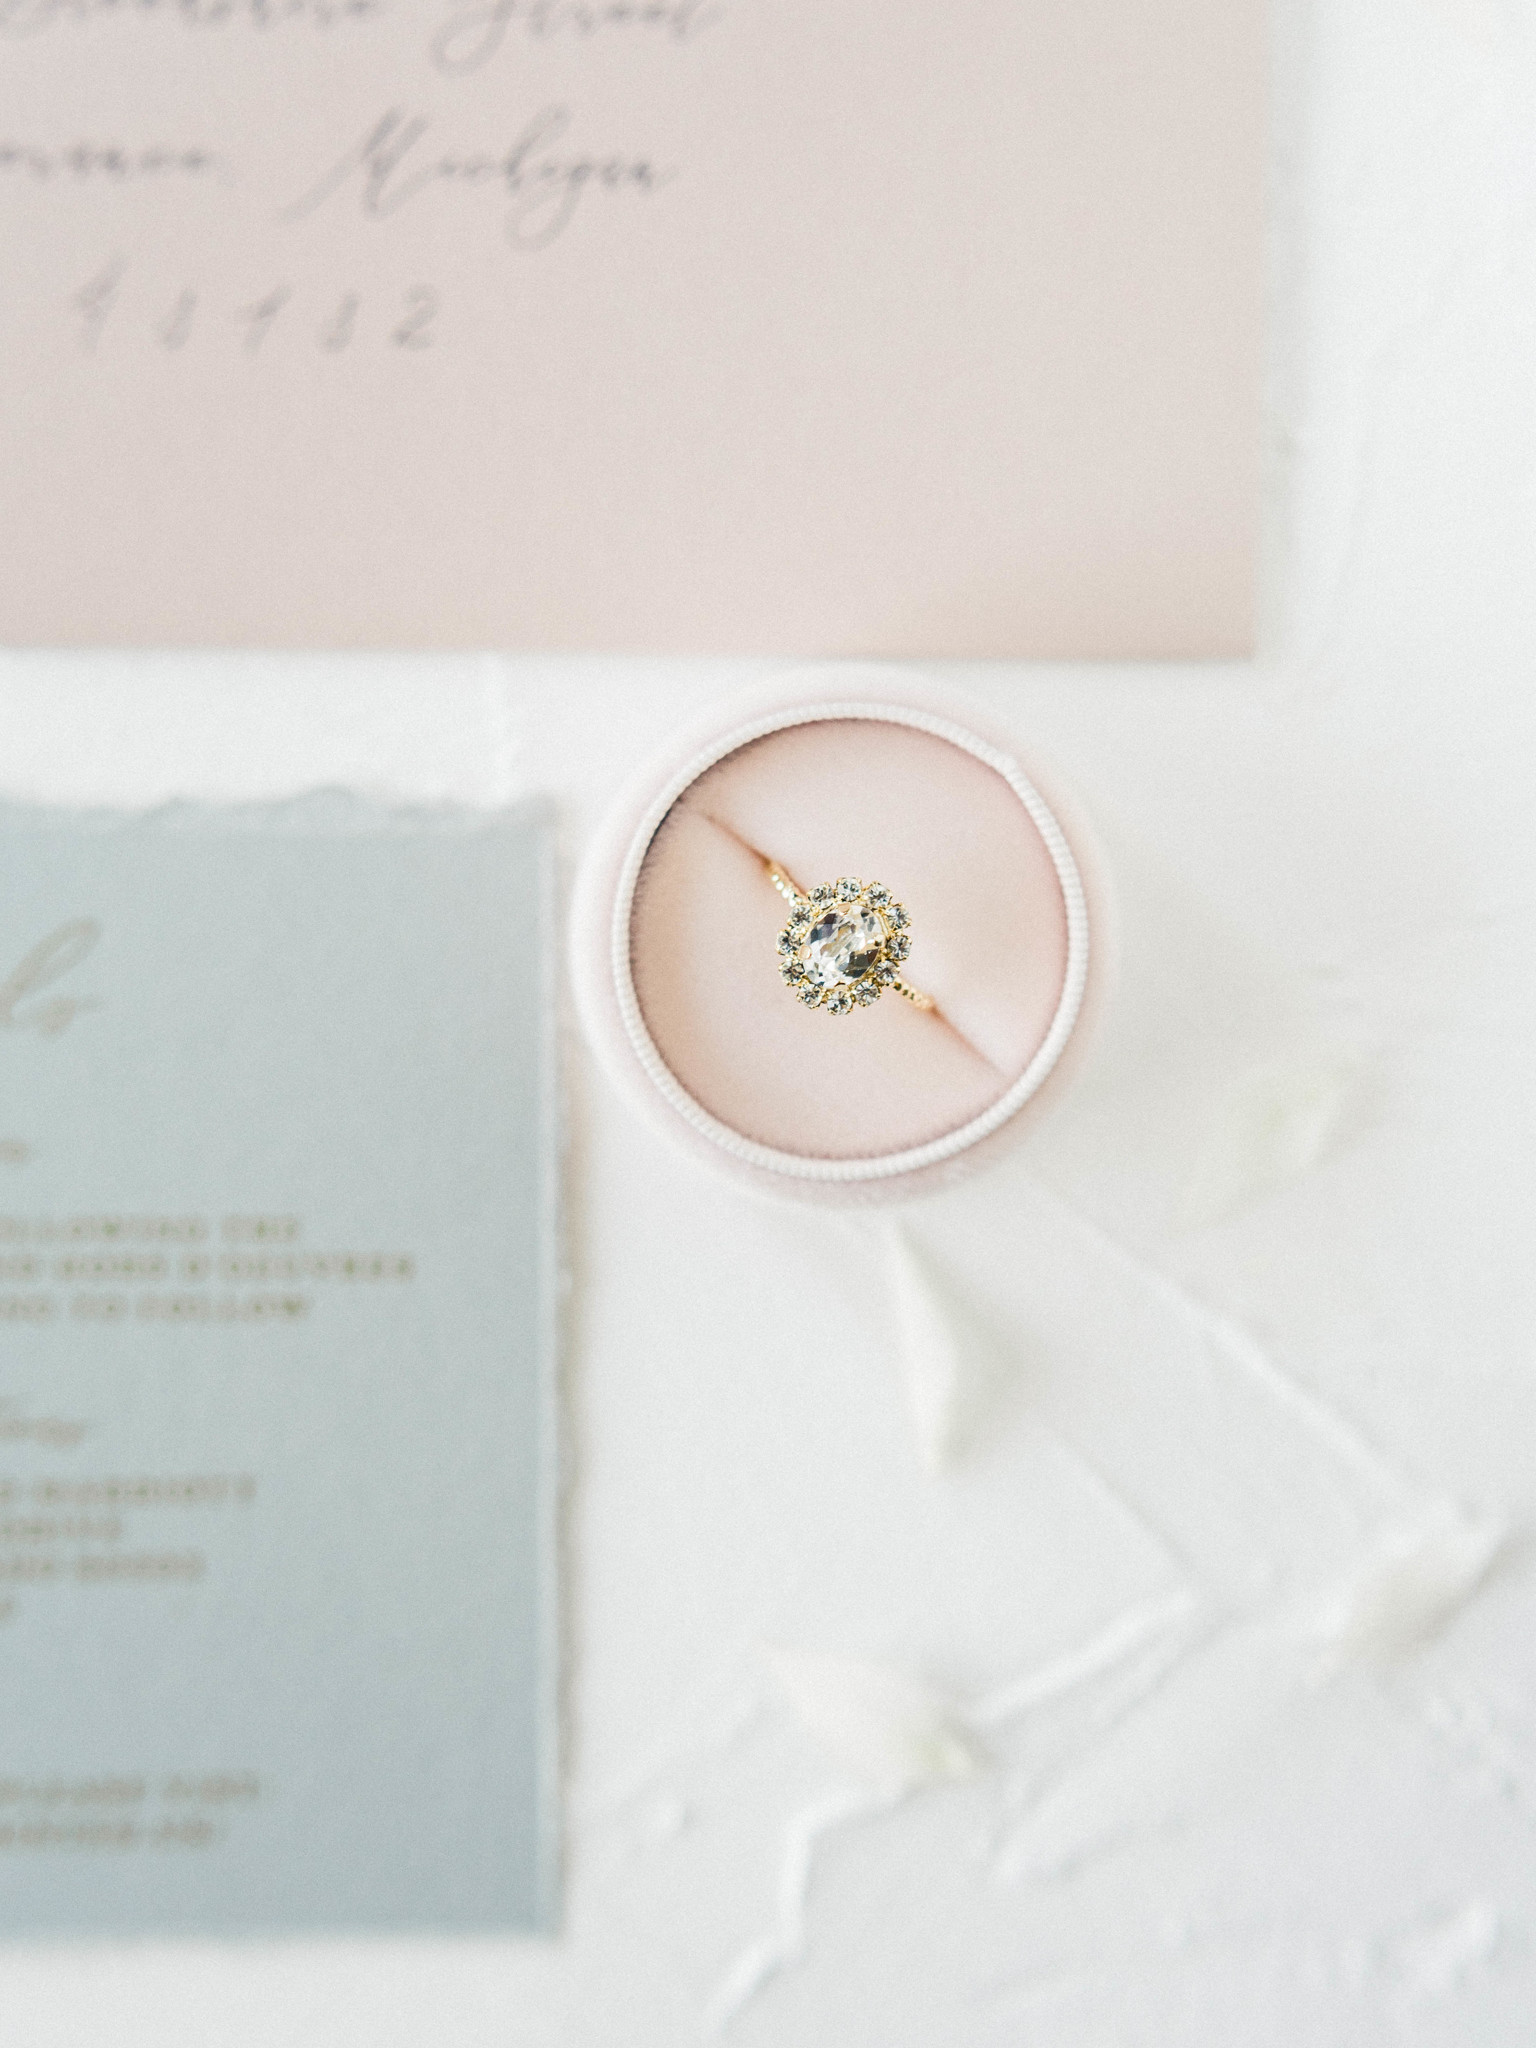 Wedding ring: Whimsical mauve wedding inspiration on Alexa Kay Events. See more romantic wedding ideas at alexakayevents.com!